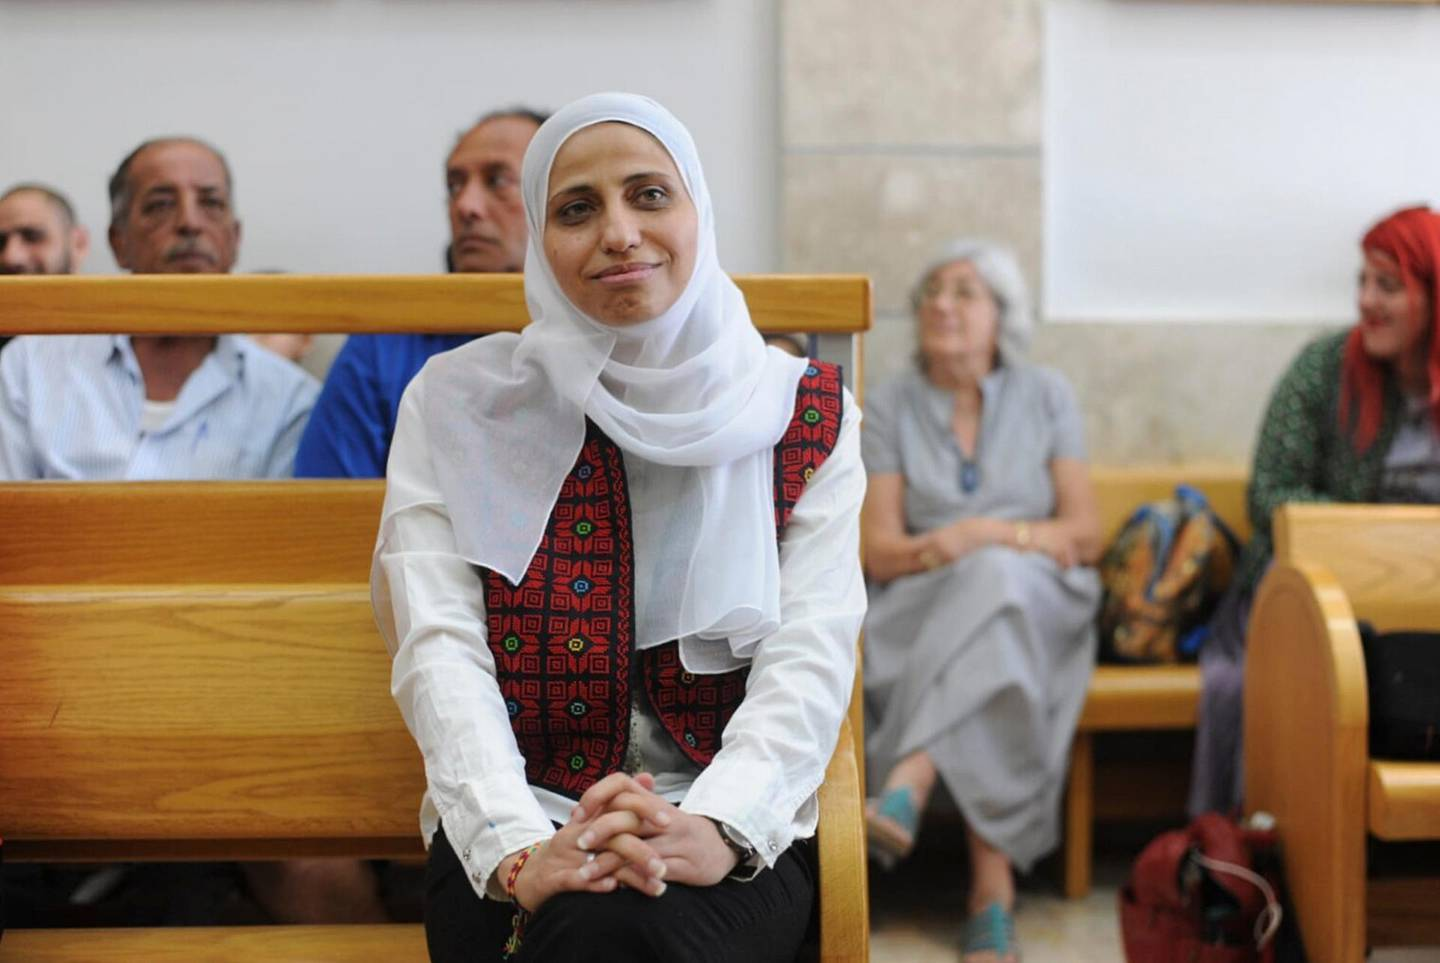 In this Tuesday, July 31, 2018 photo, Arab poet Dareen Tatour sits in a courtroom in Nazareth, Israel. The Israeli court sentenced Tatour to five months in prison for incitement to violence in social media posts she made during a wave of Israeli-Palestinian violence. Tatour's case drew international attention after Israel put her under extended house arrest for her poems. More than 150 literary figures, including authors Alice Walker and Naomi Klein, called for Tatour's release. (AP Photo/Rami Shllush)